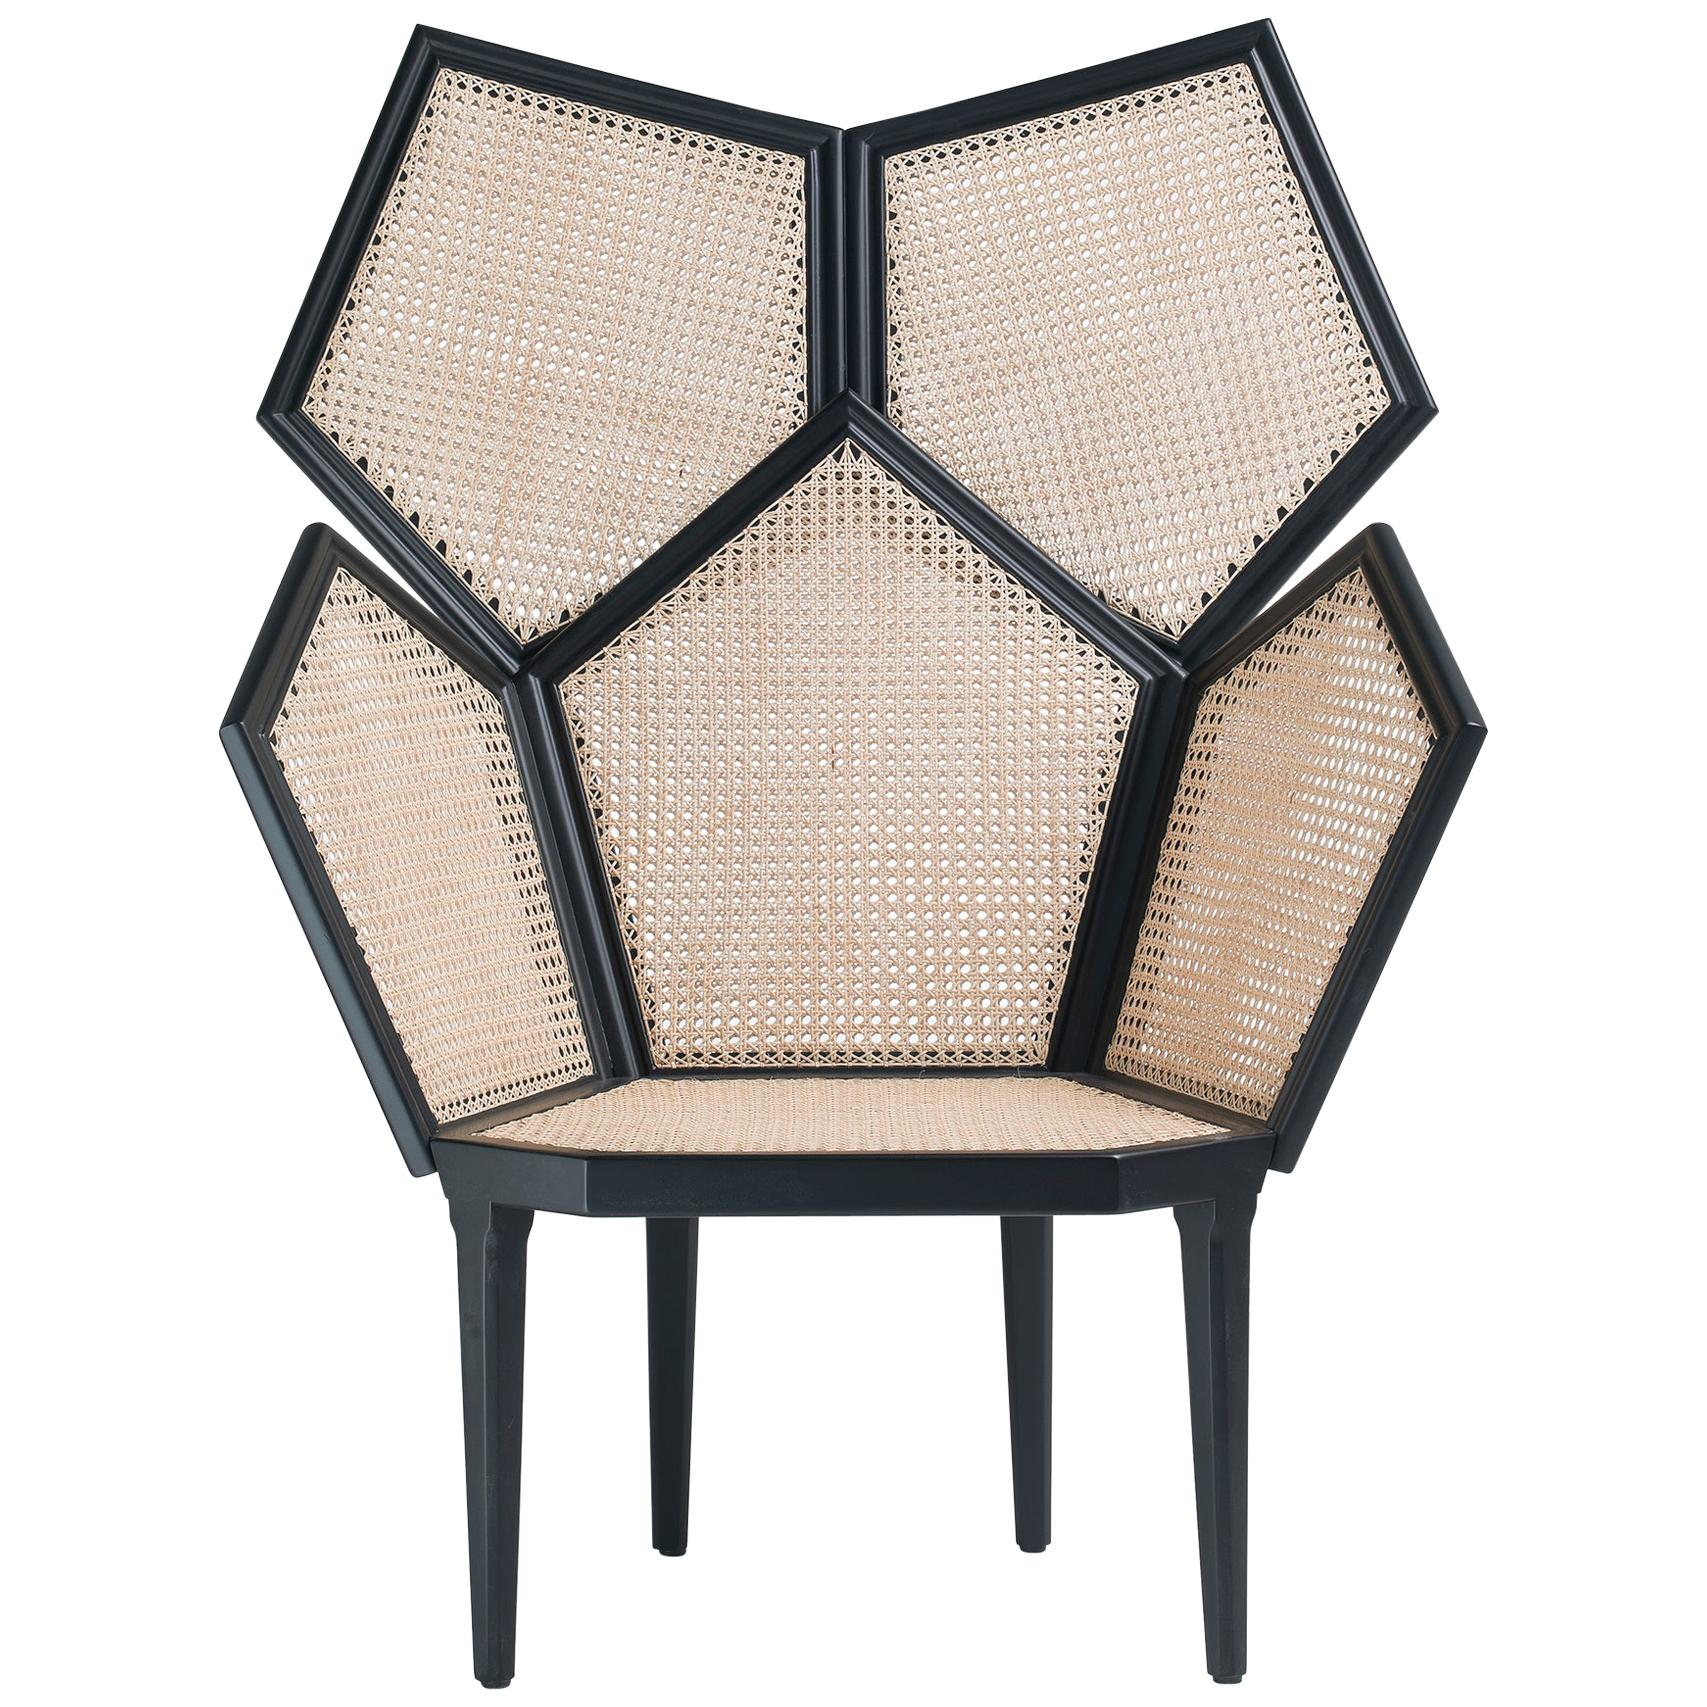 LUI 5/A Double Cane Armchair in Matt Black Lacquered Finish